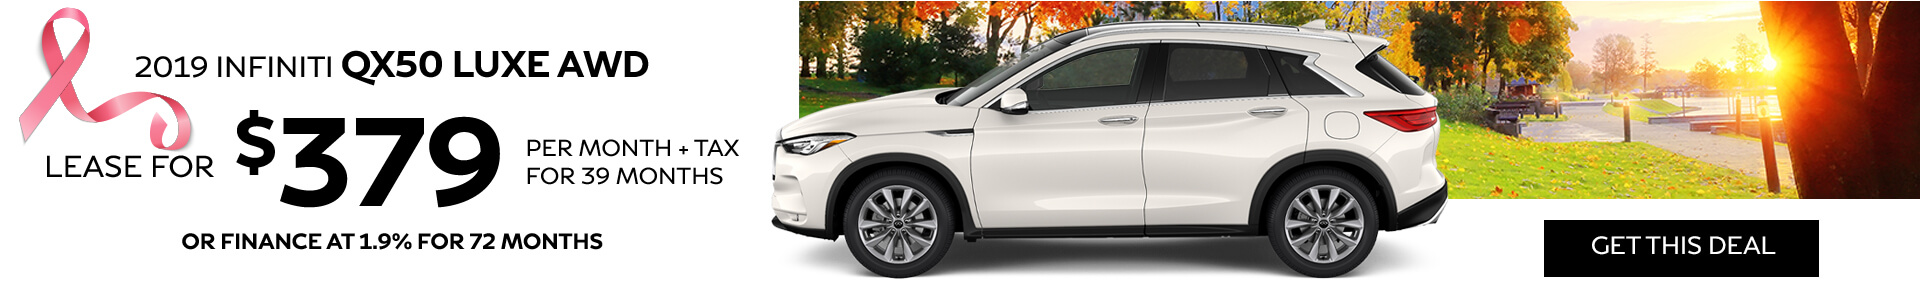 QX50 LUXE - Lease $379